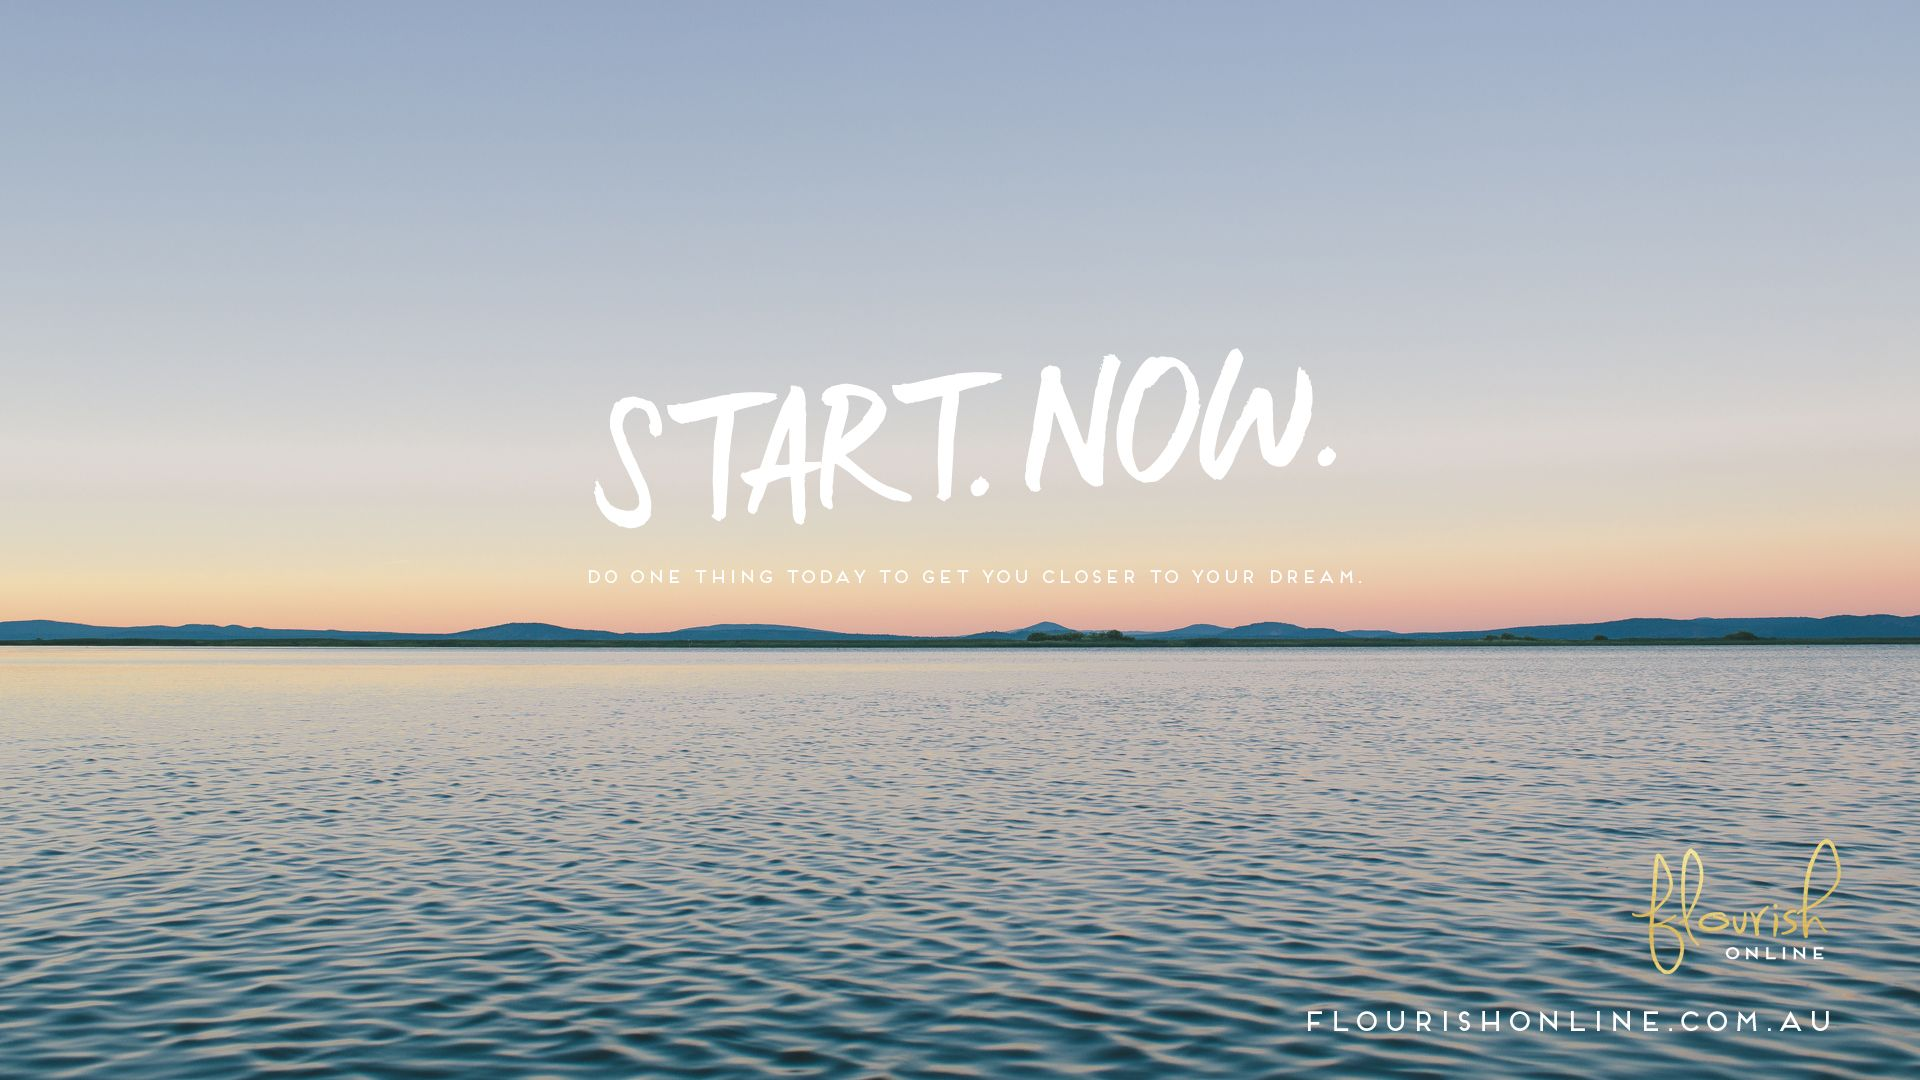 Start Now Free Inspirational Desktop Wallpaper Favorite